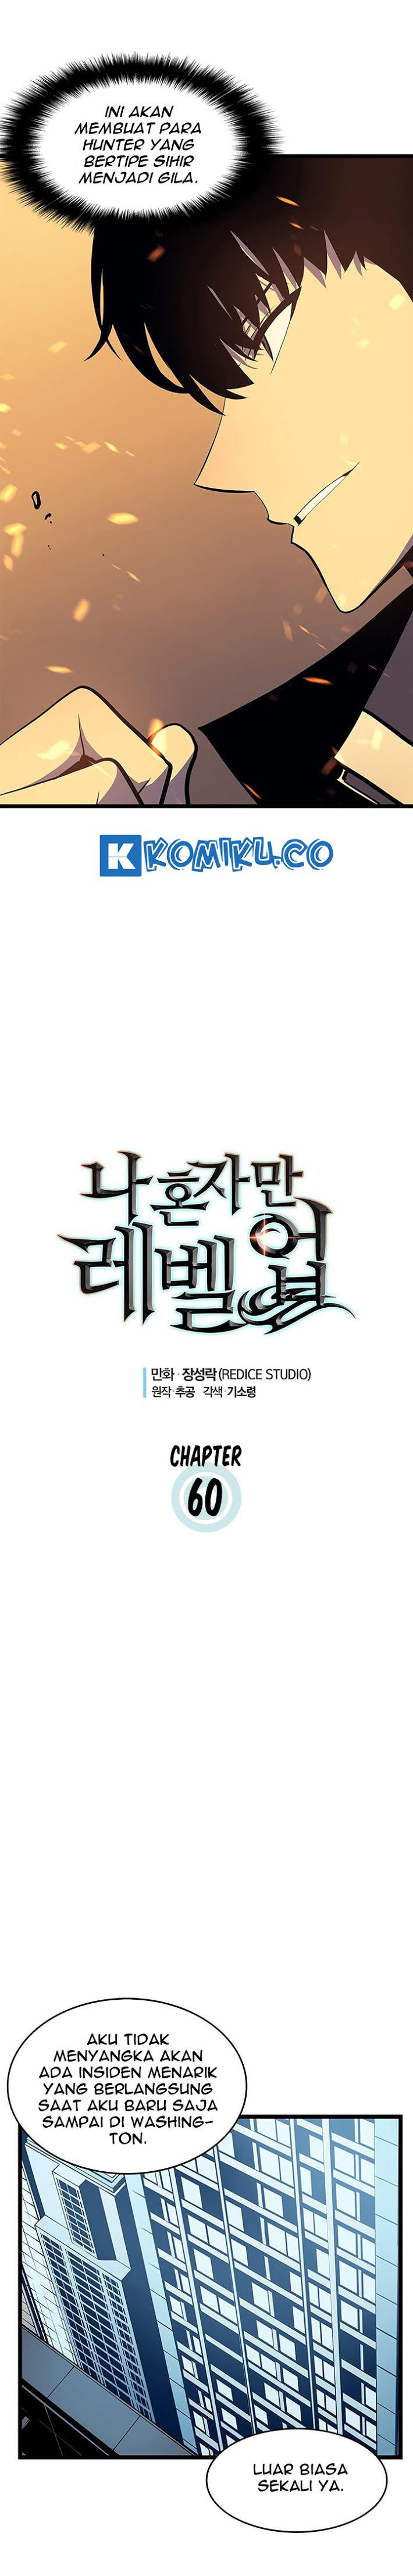 Solo Leveling Chapter 60